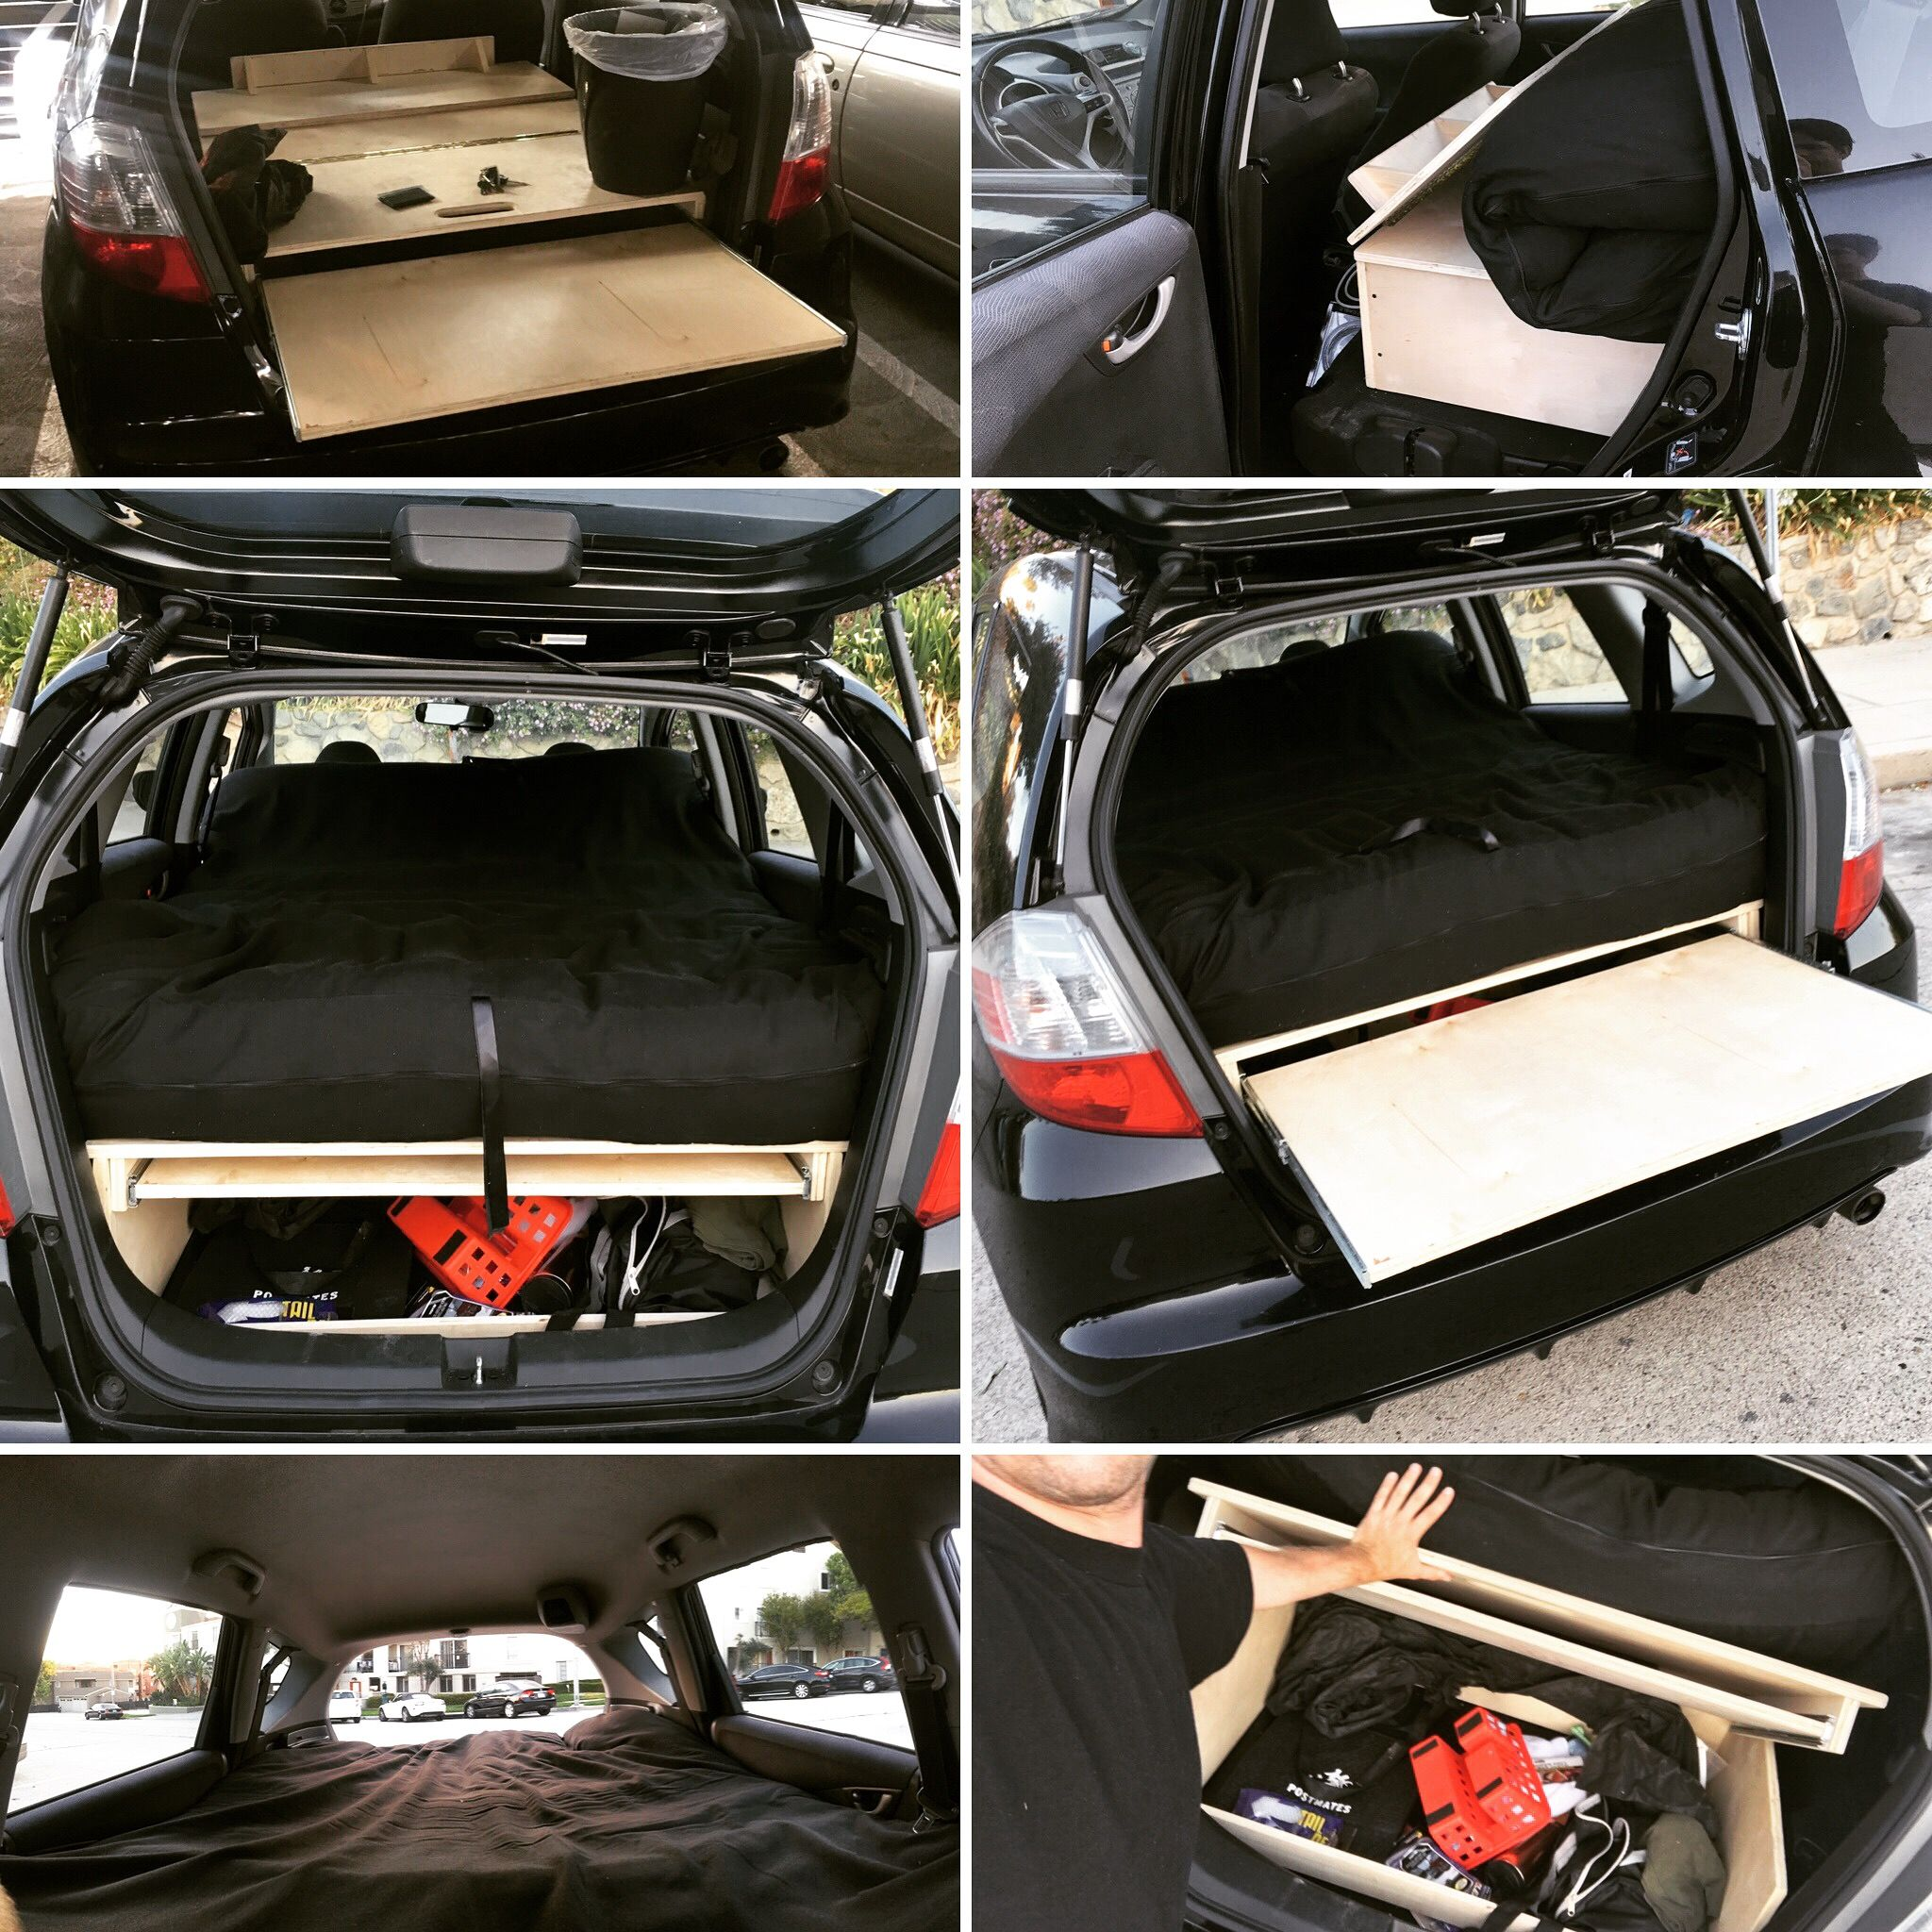 Turning My Fit Into A Mobile Camper Page 2 Unofficial Honda Fit